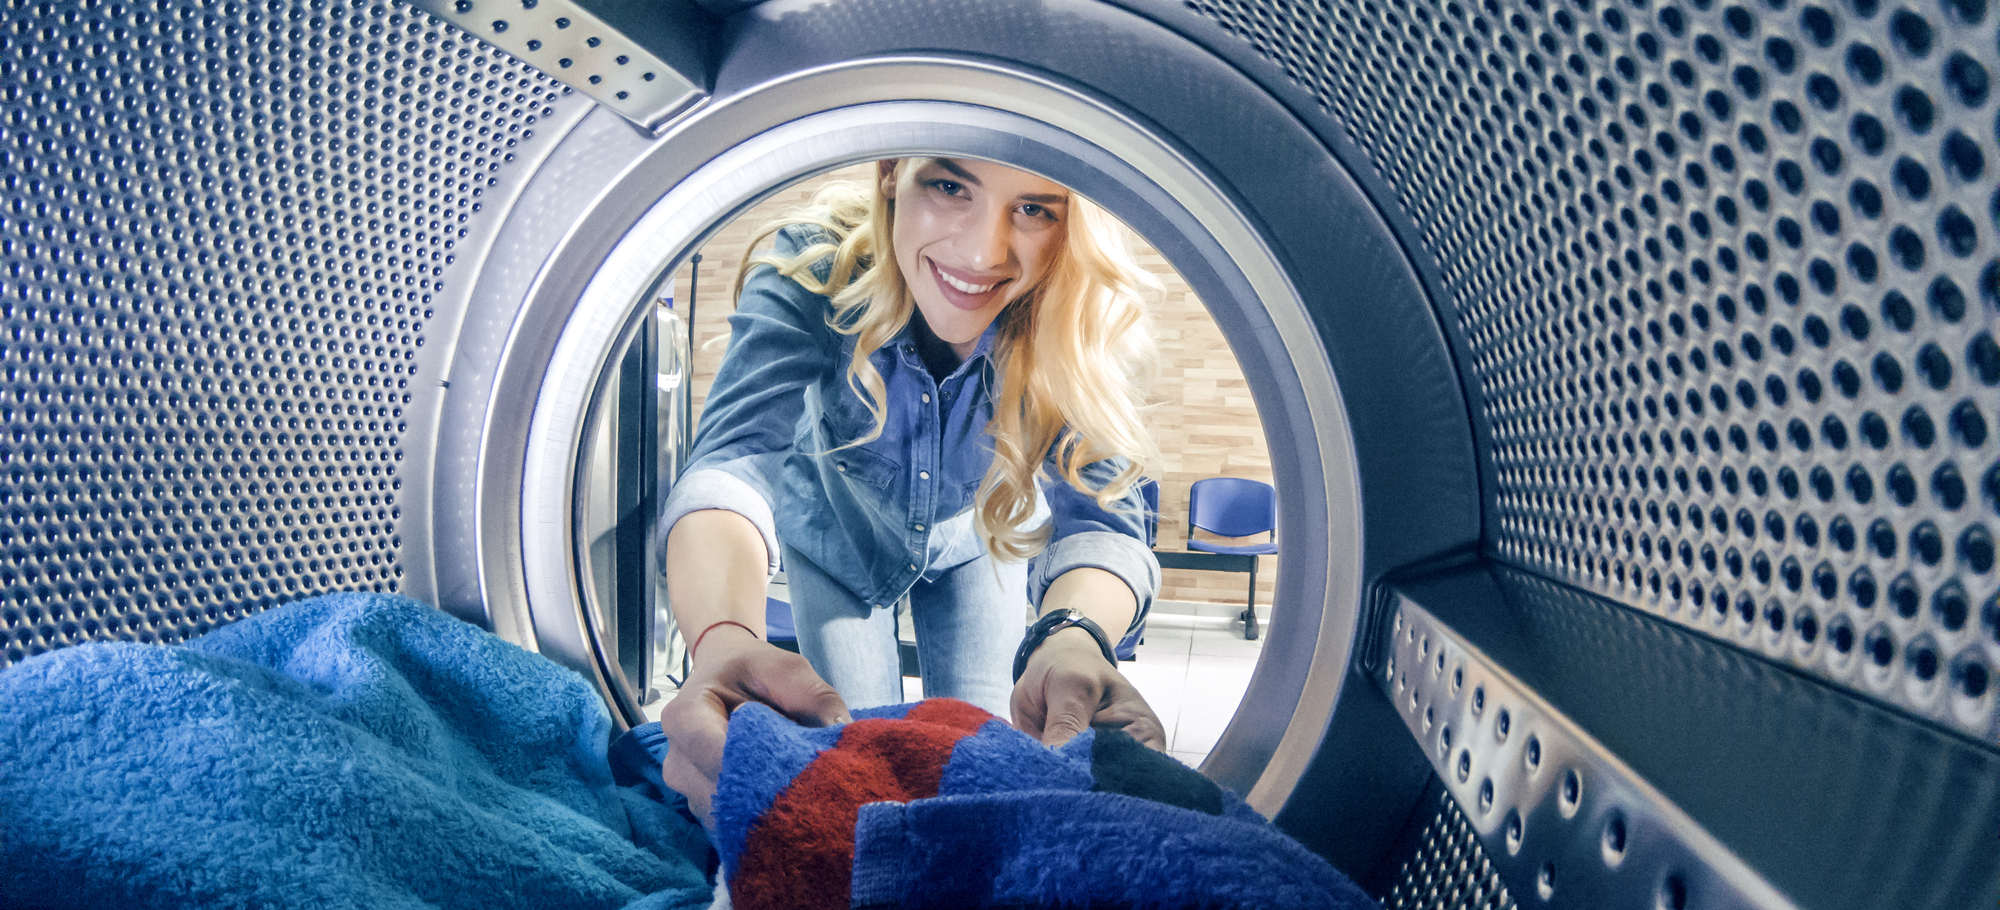 Taking Care of Your Washer and Dryer